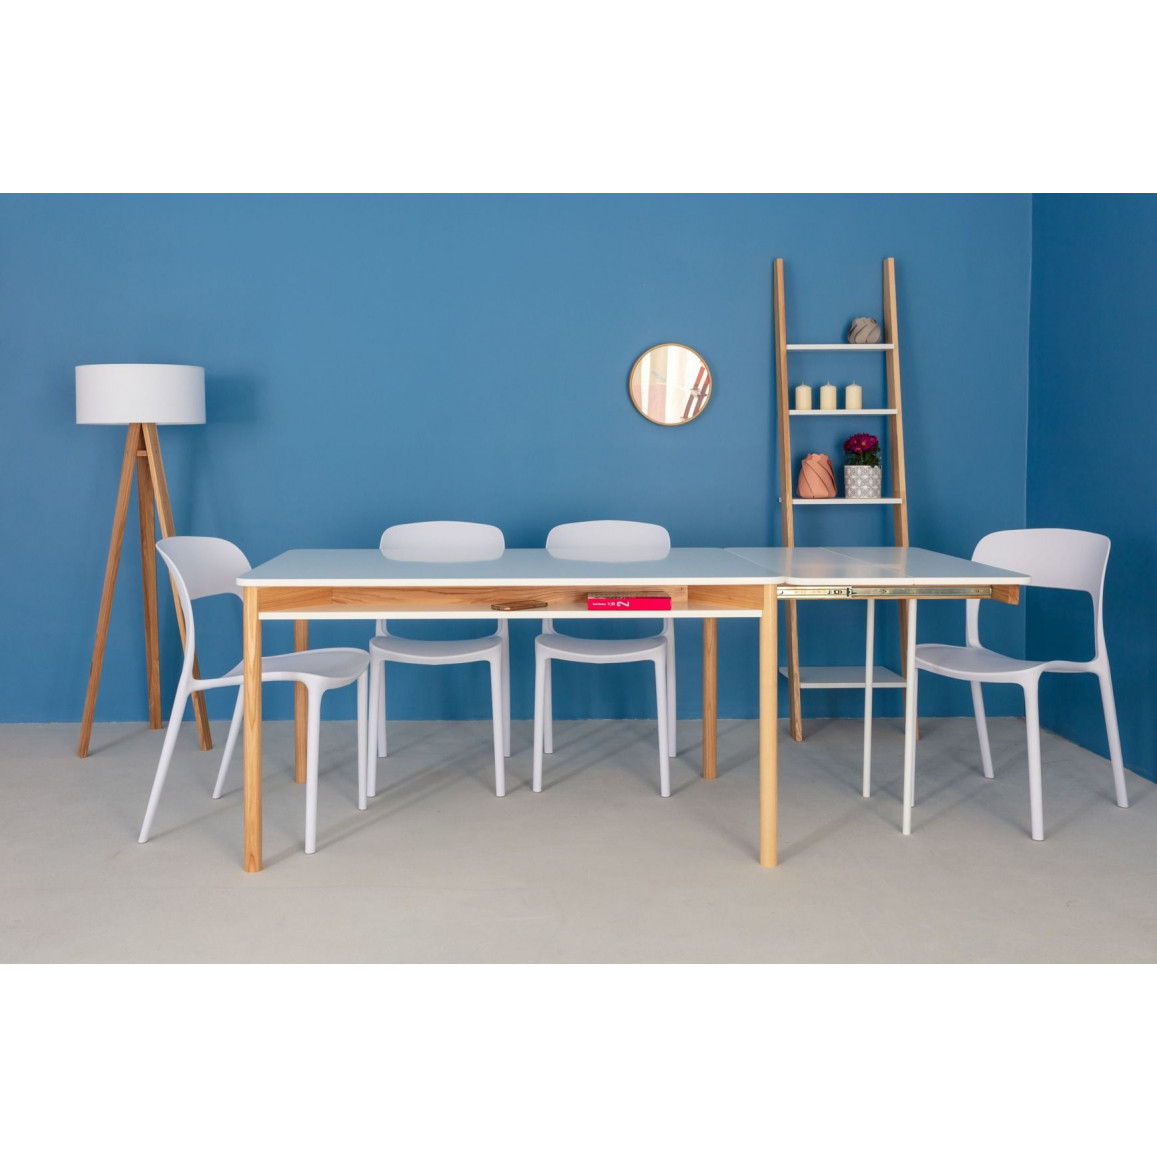 Zeen Extendable Dining Table with Shelf   White